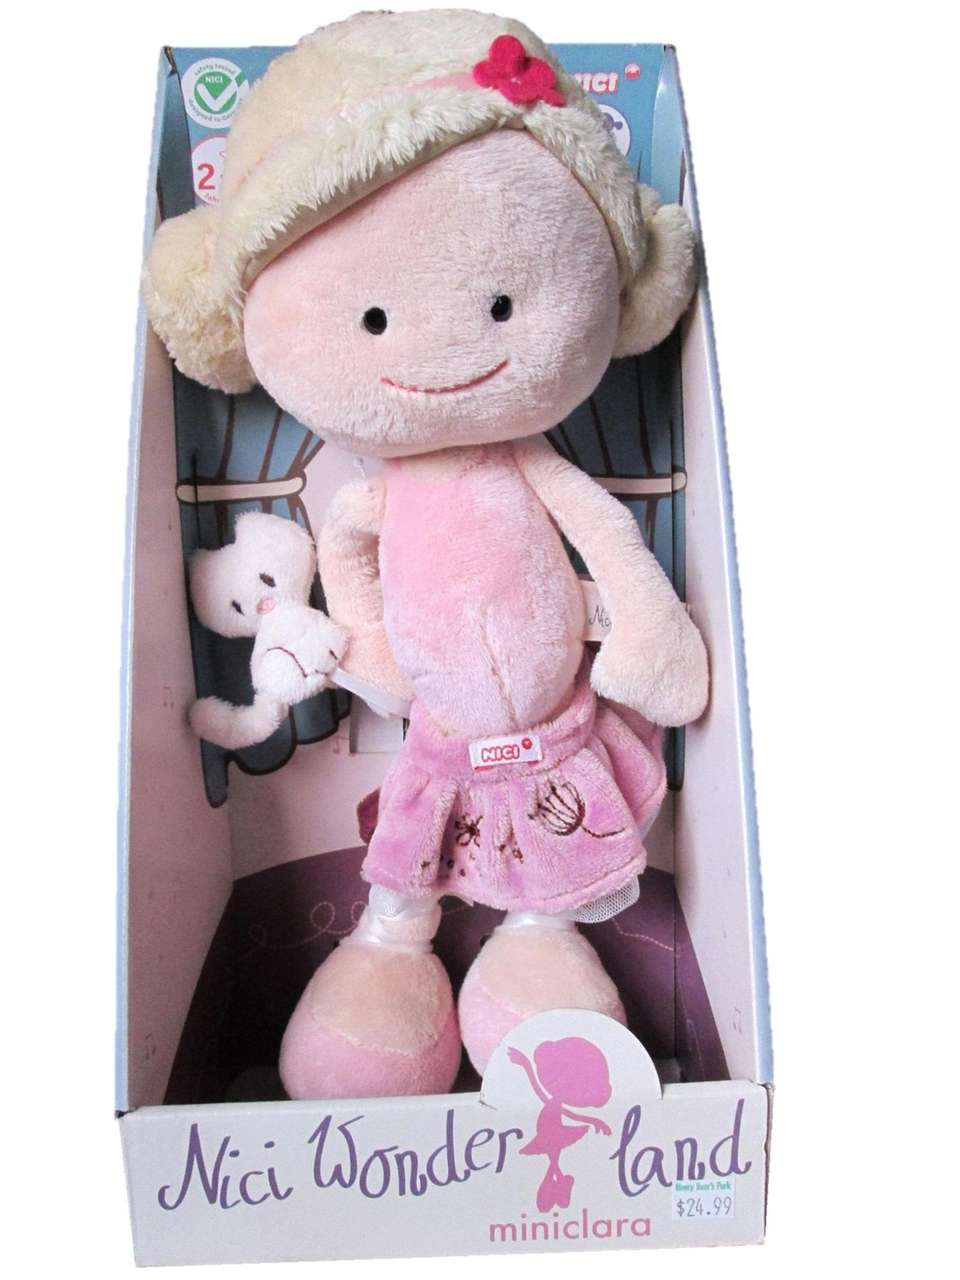 The doll comes with an age recommendation of